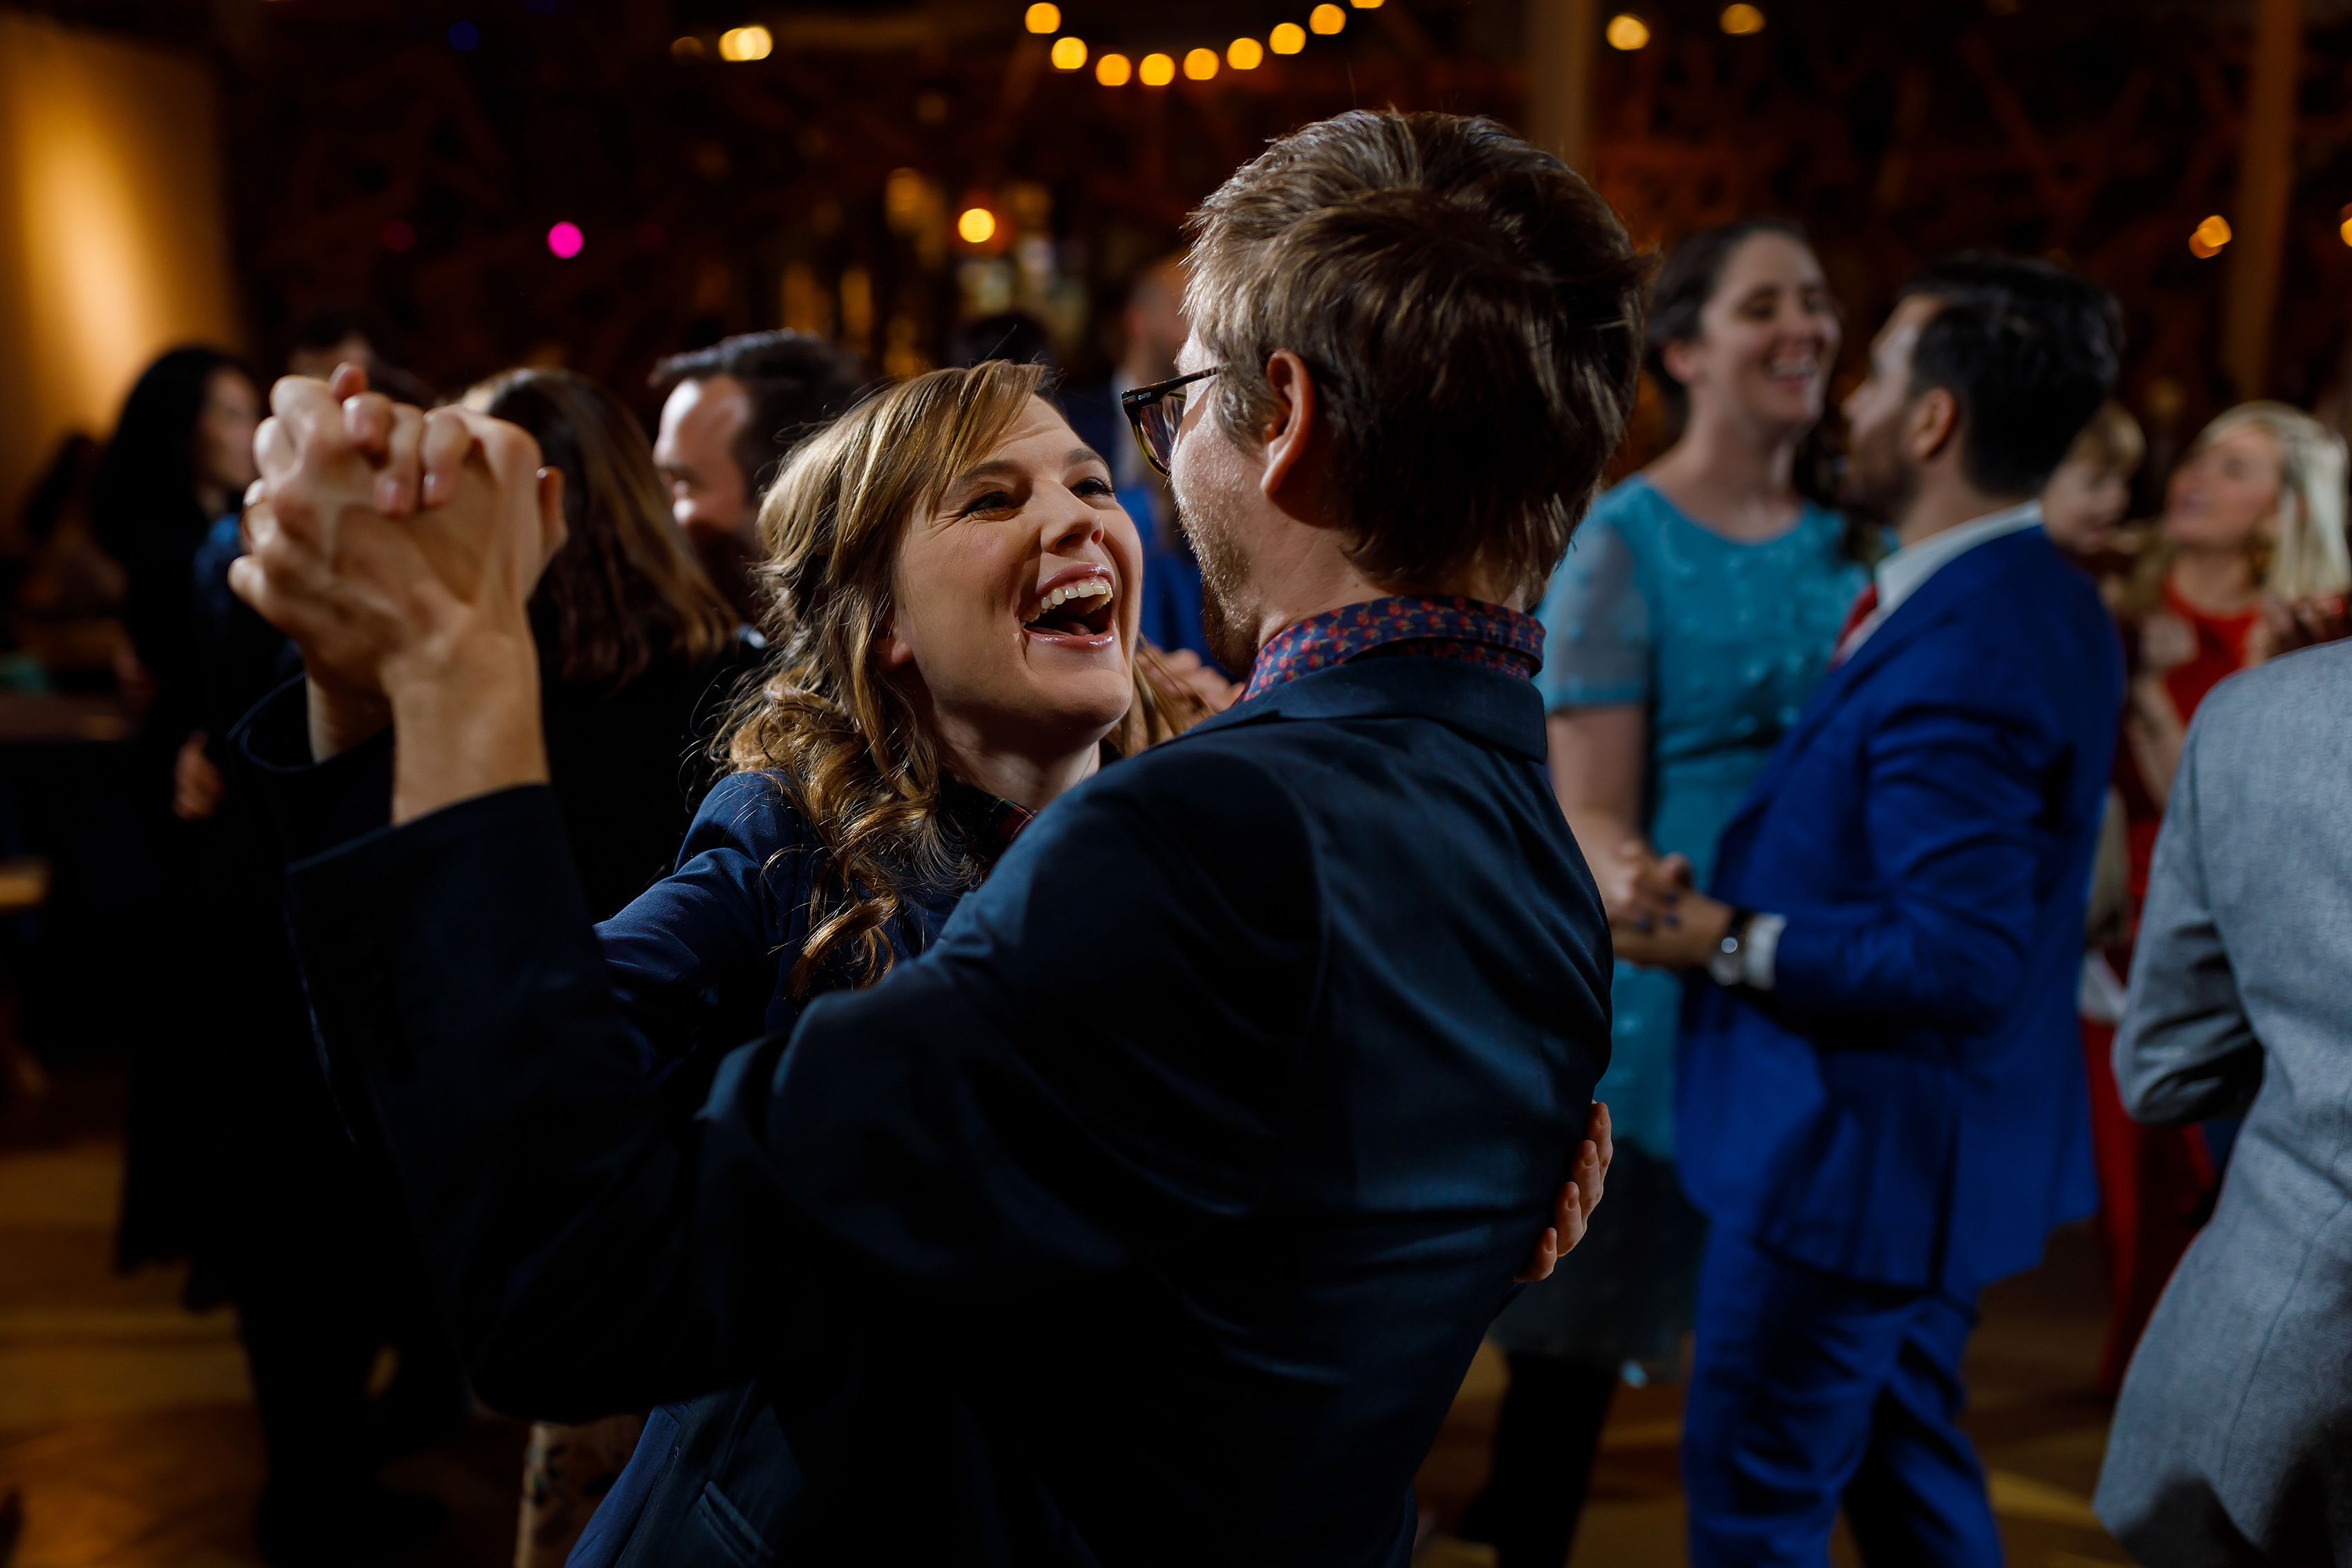 wedding guests dance during wedding reception at Rust Belt Market in downtown Ferndale, Michigan